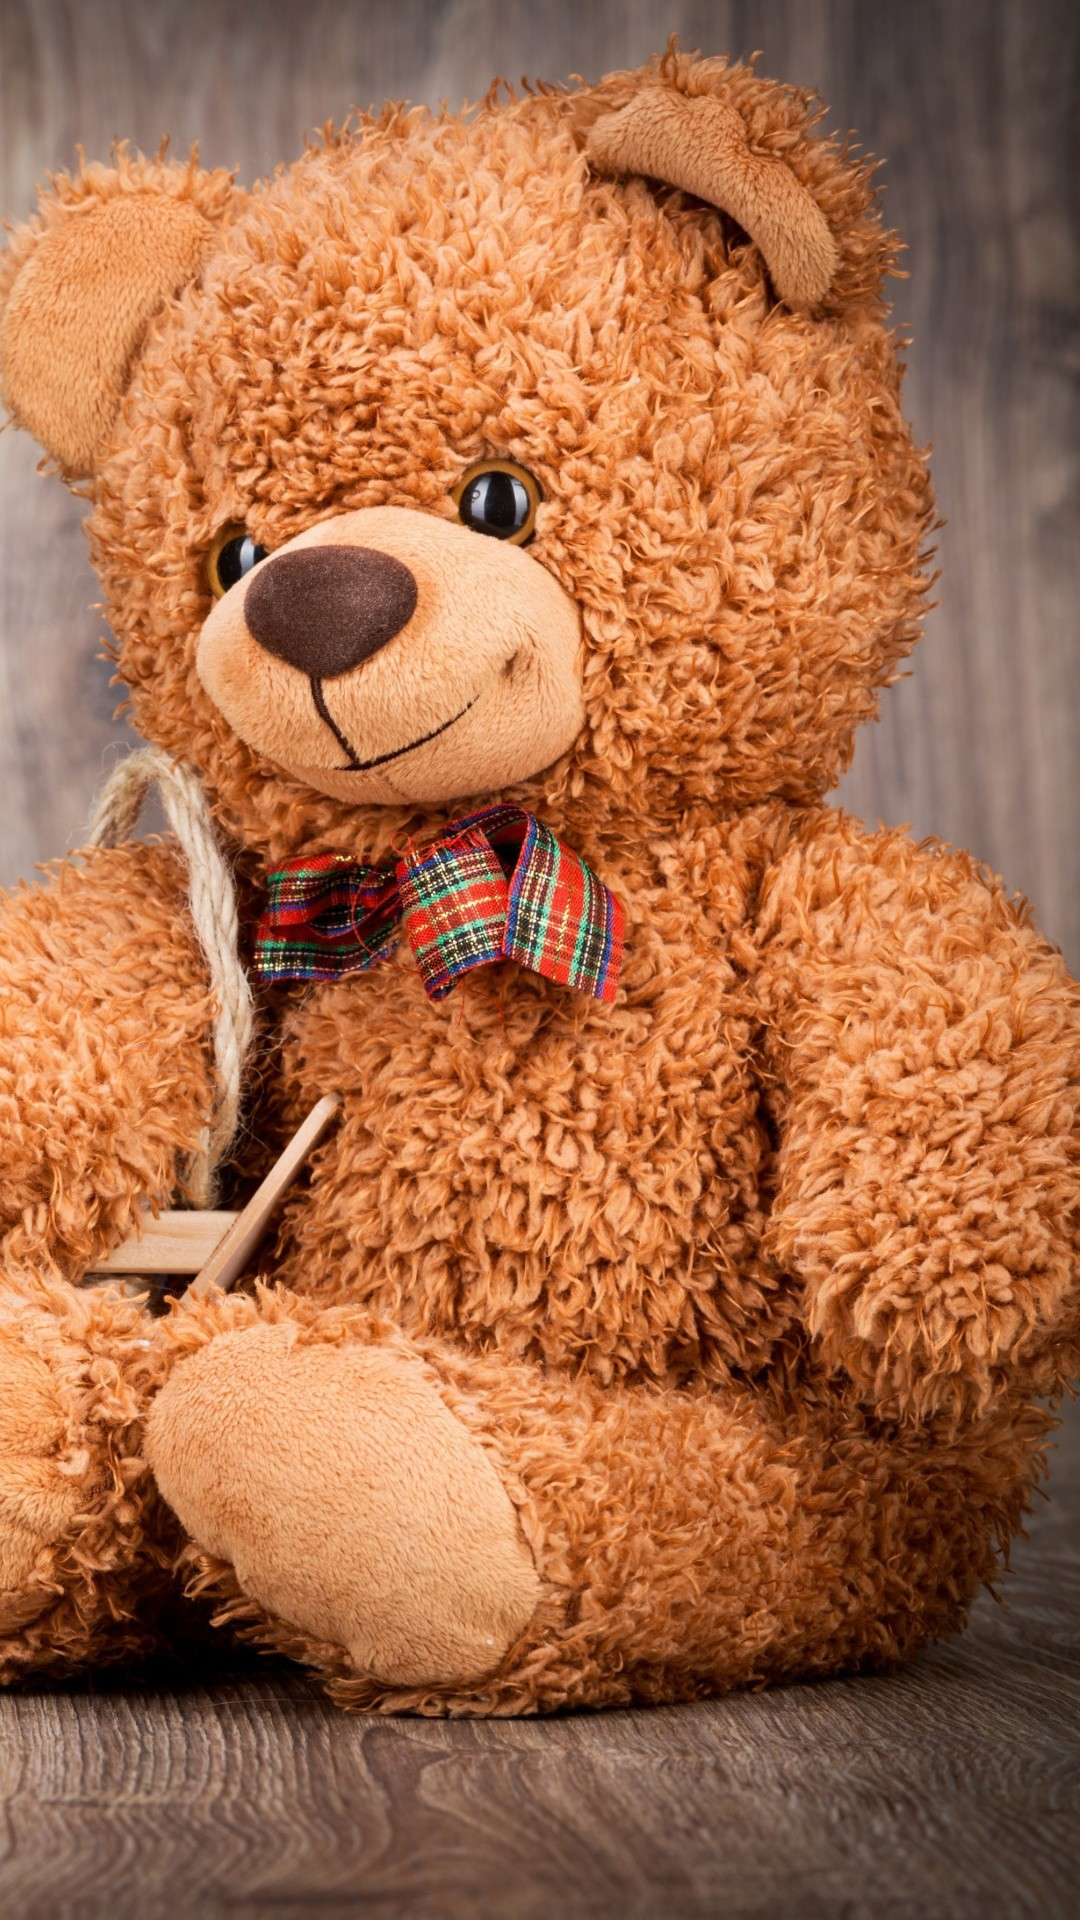 Free Cute Wallpapers For My Mobile Cute Teddy Bear Wallpaper 50 Images